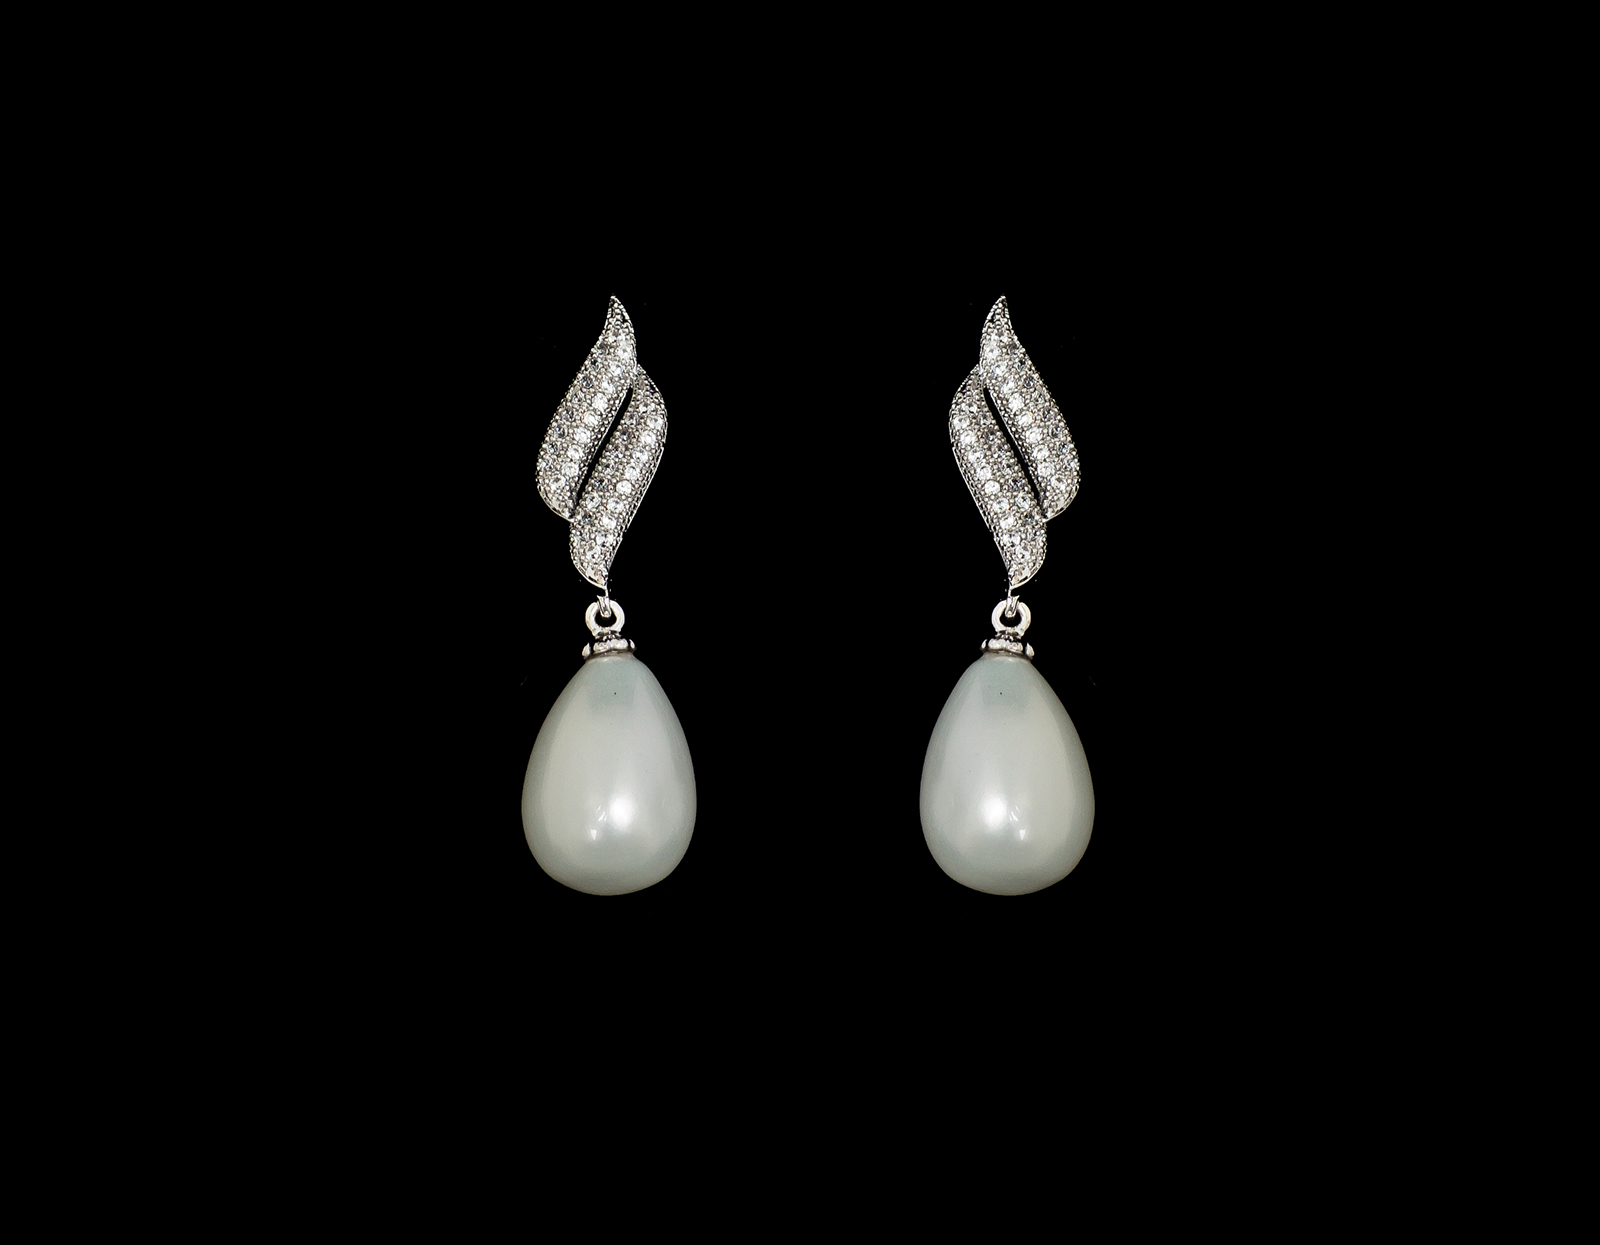 Bridal Classics Earrings CZ-857